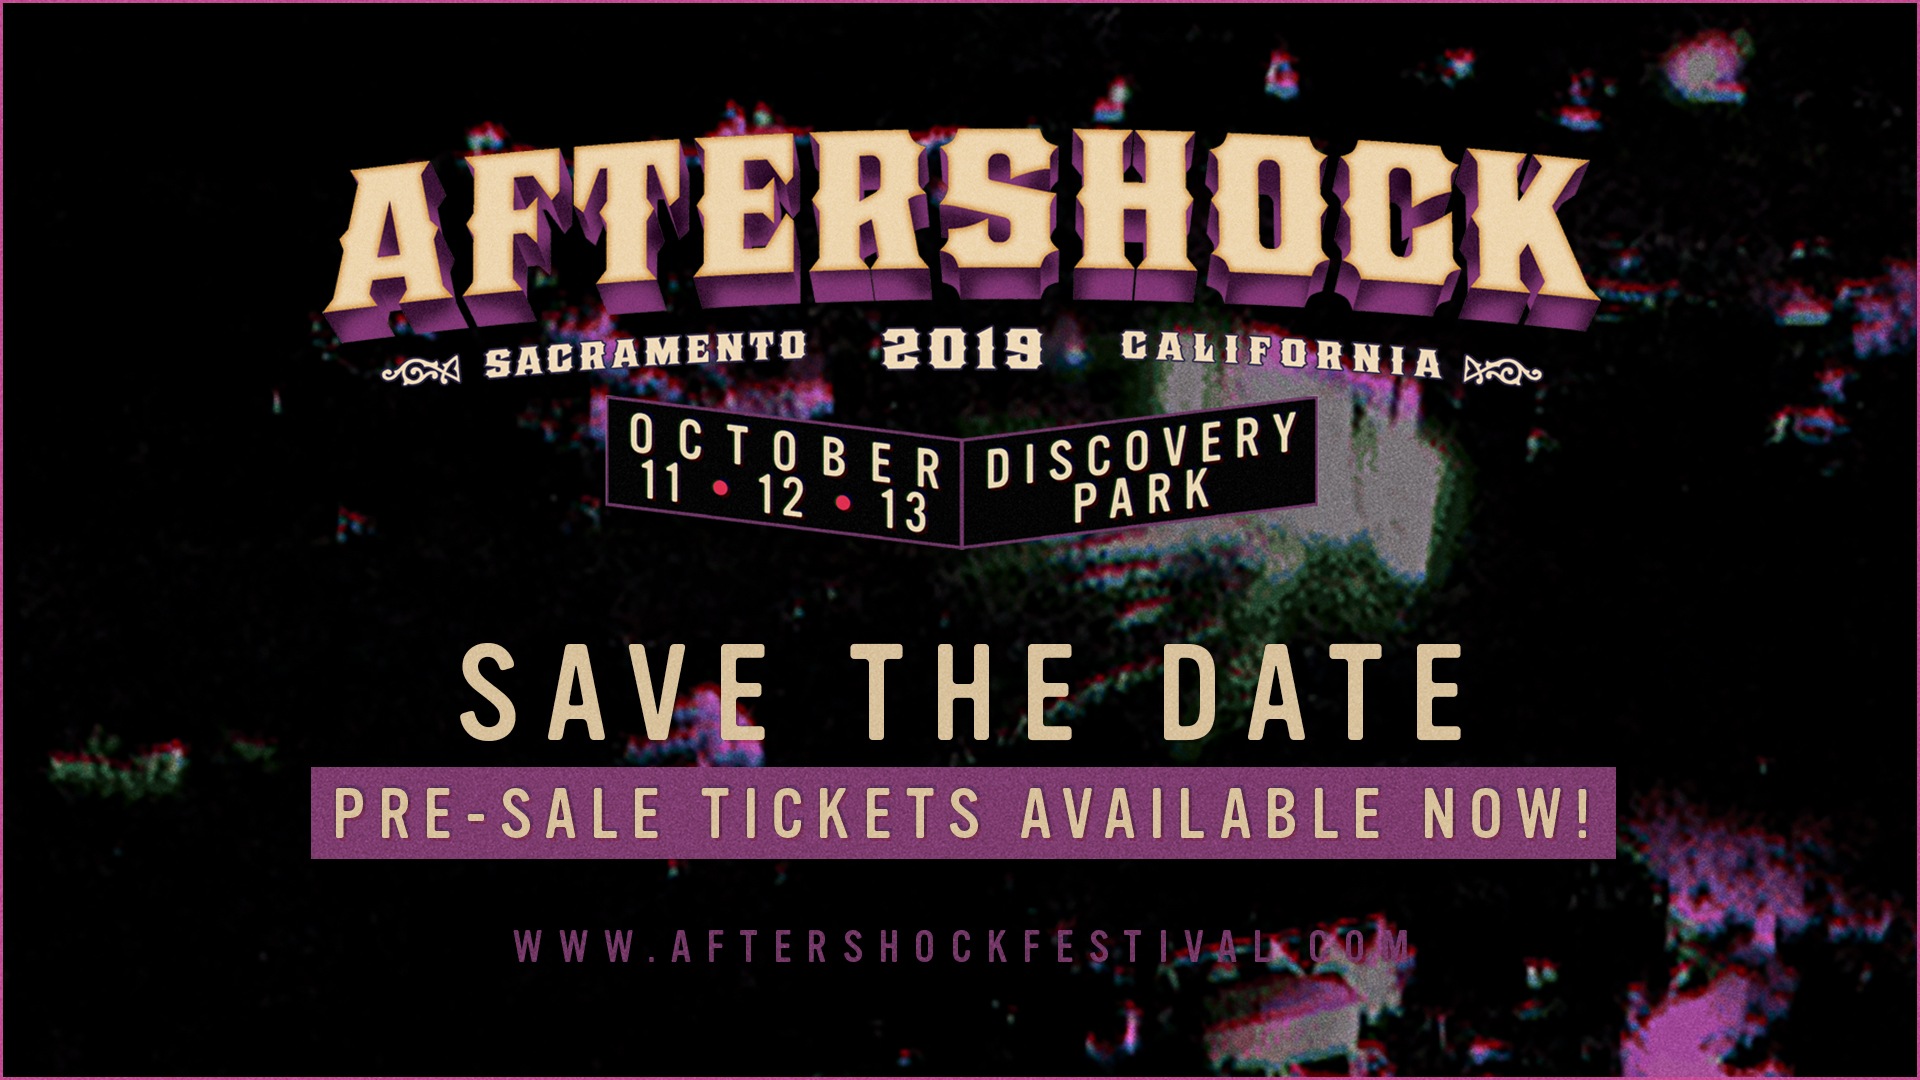 Aftershock 2019 announced: Tool, blink-182, Slipknot set to headline